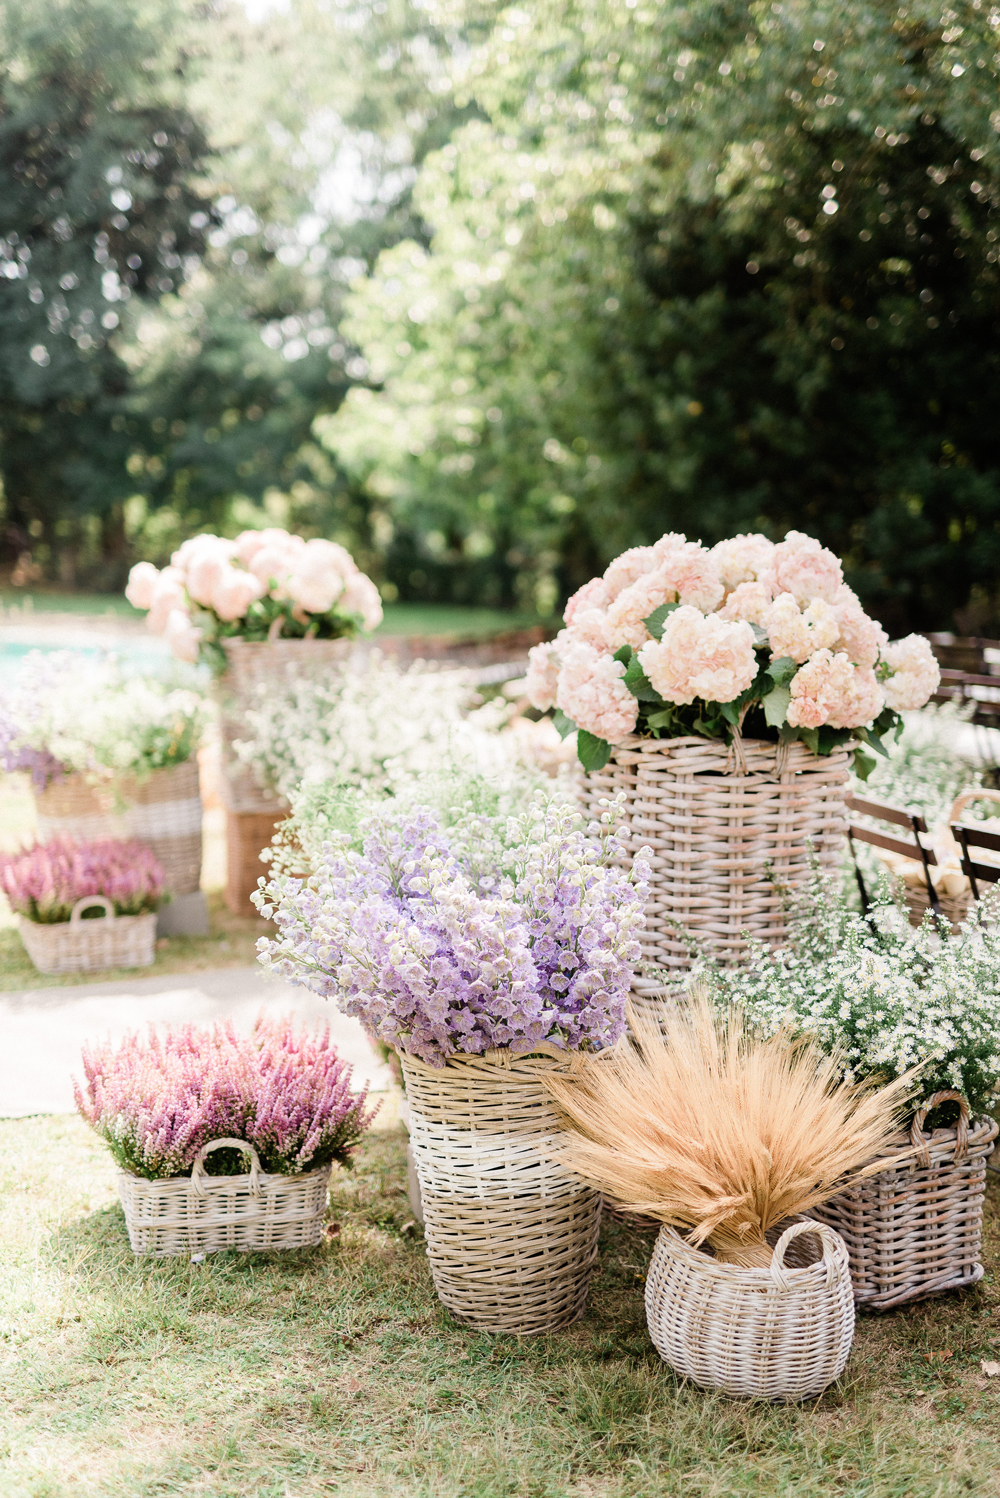 various sized wicker baskets holding pastel florals